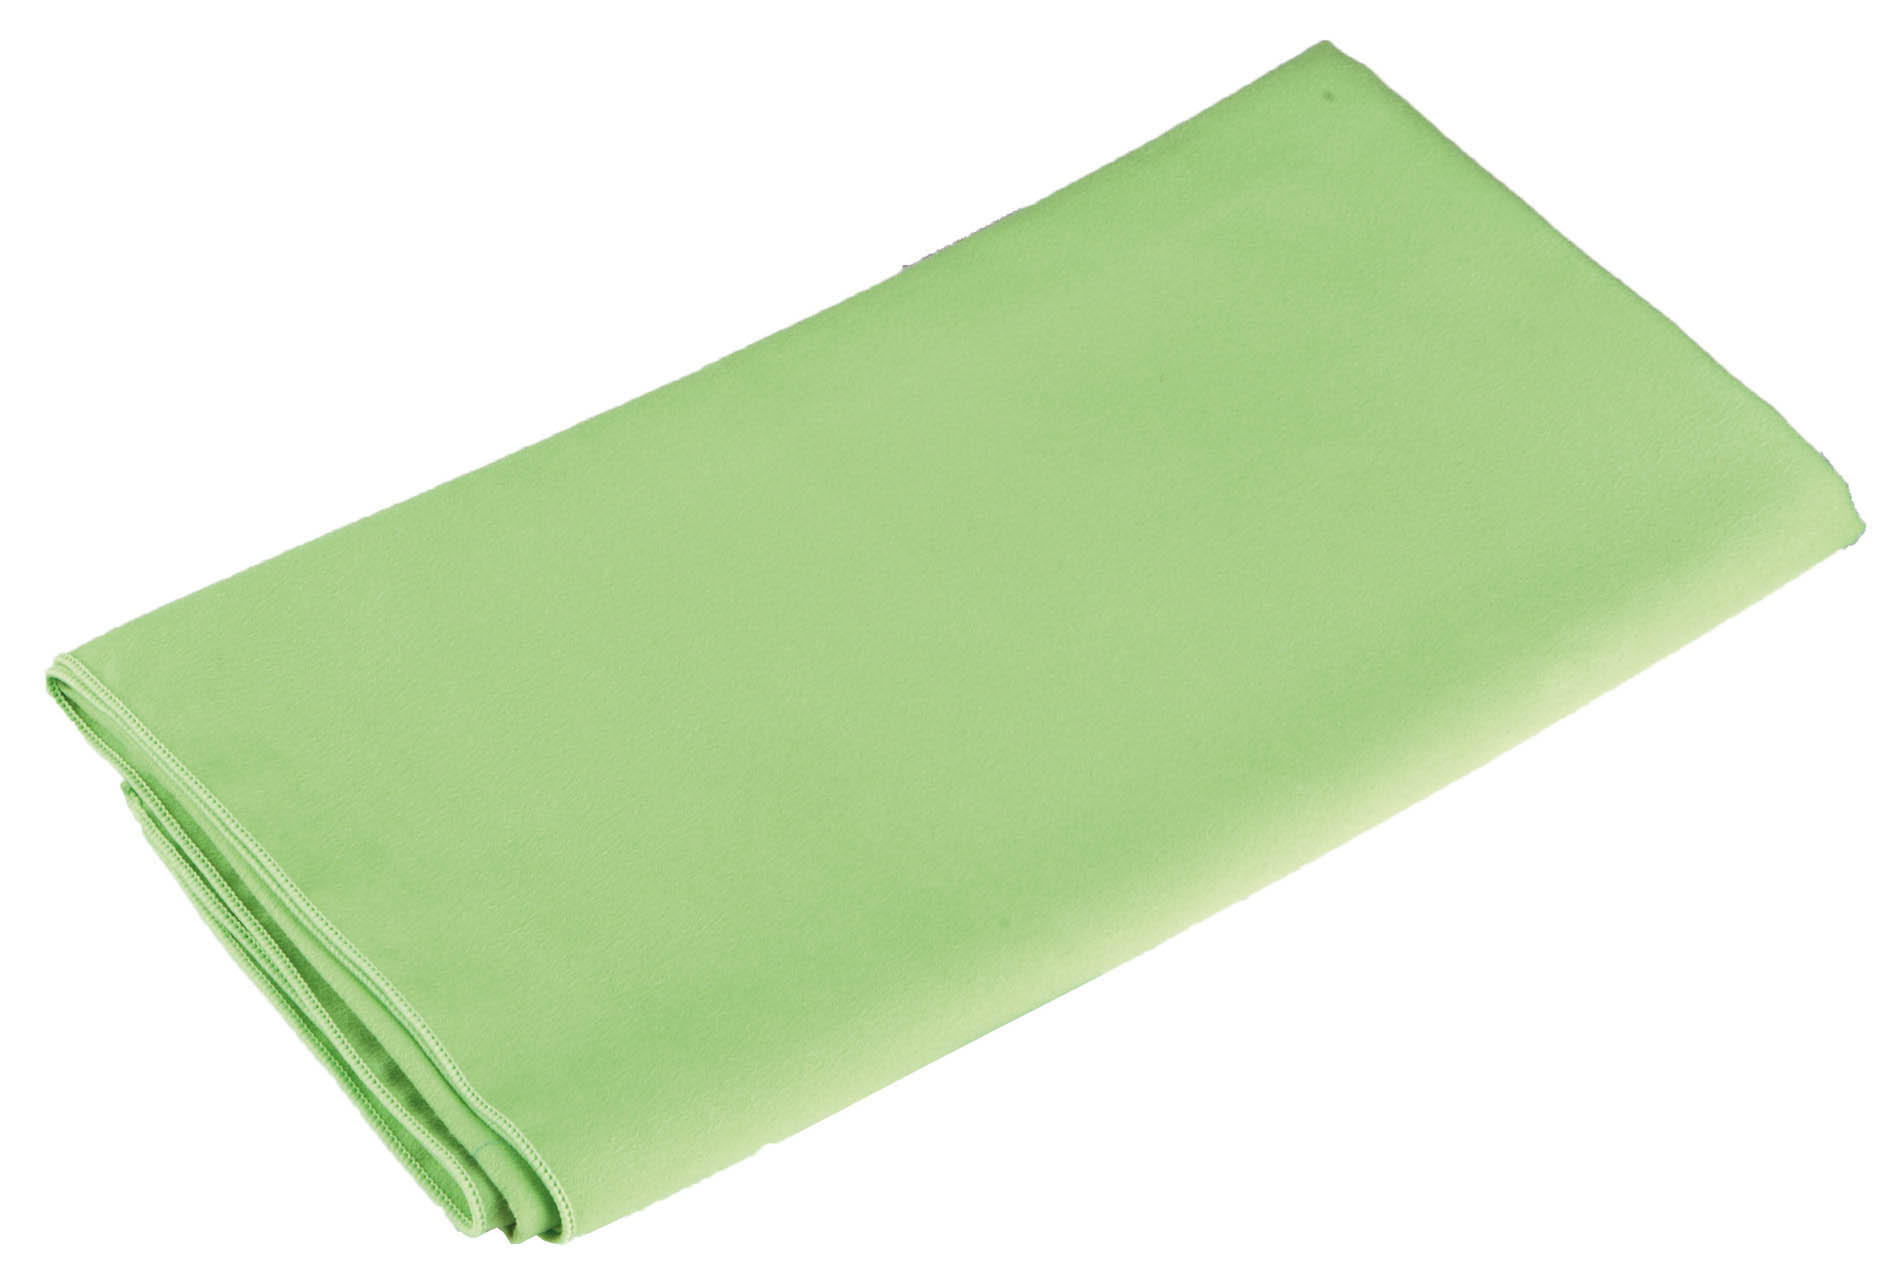 Swimprint Ultra Dry Custom Sports Towel in lime